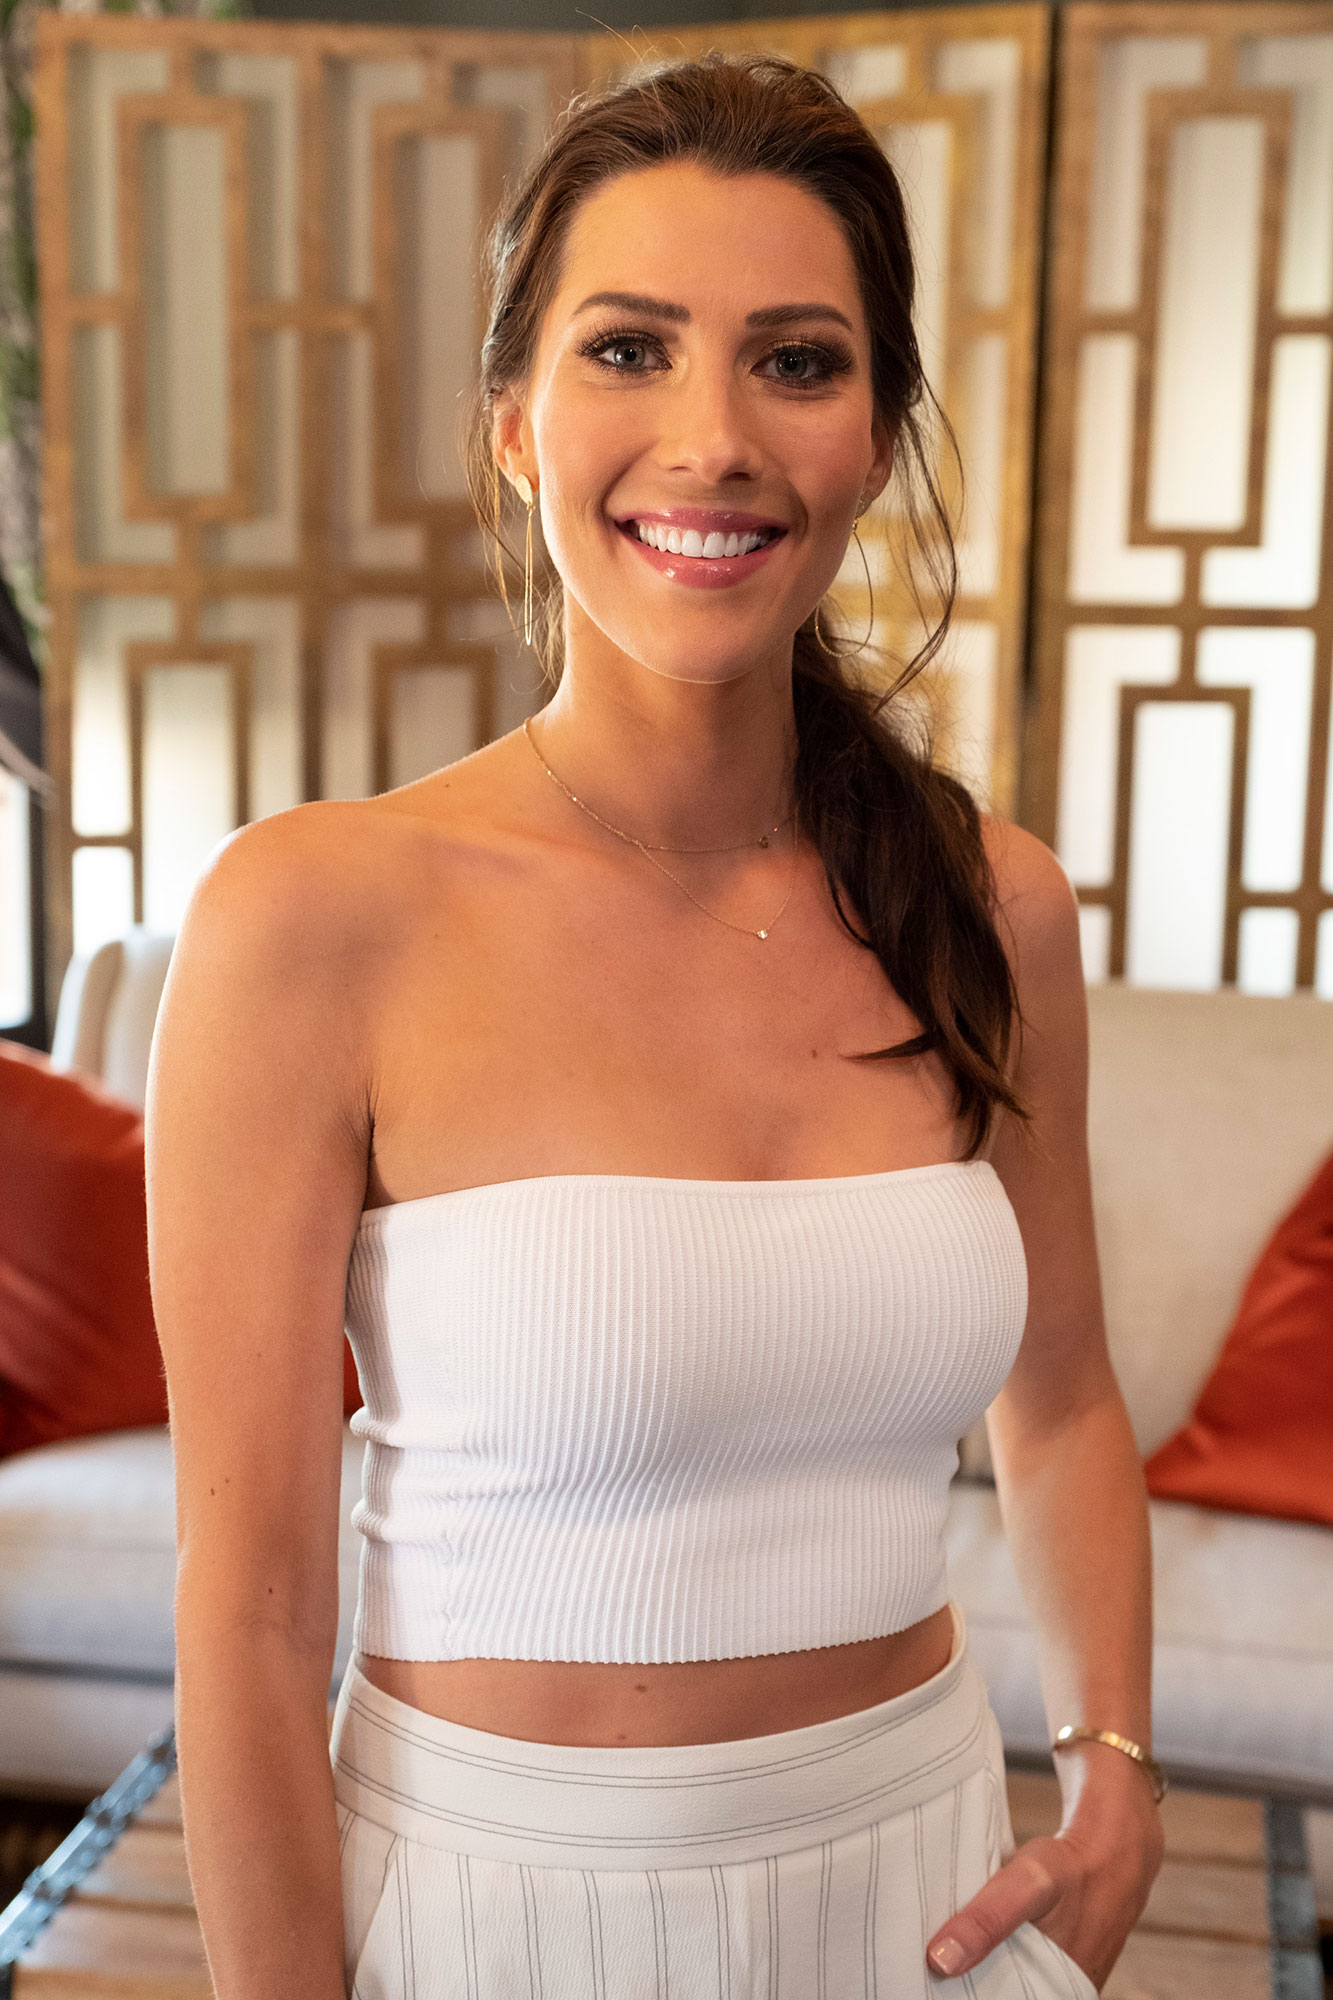 """Becca Kufrin """"Bachelorette Reunion: The Biggest Bachelorette Reunion in Bachelor History Ever!"""" - Kufrin is still engaged to her final rose recipient, Garrett Yrigoyen . The 29-year-old used the reunion platform to advocate for adding a dog to their brood."""